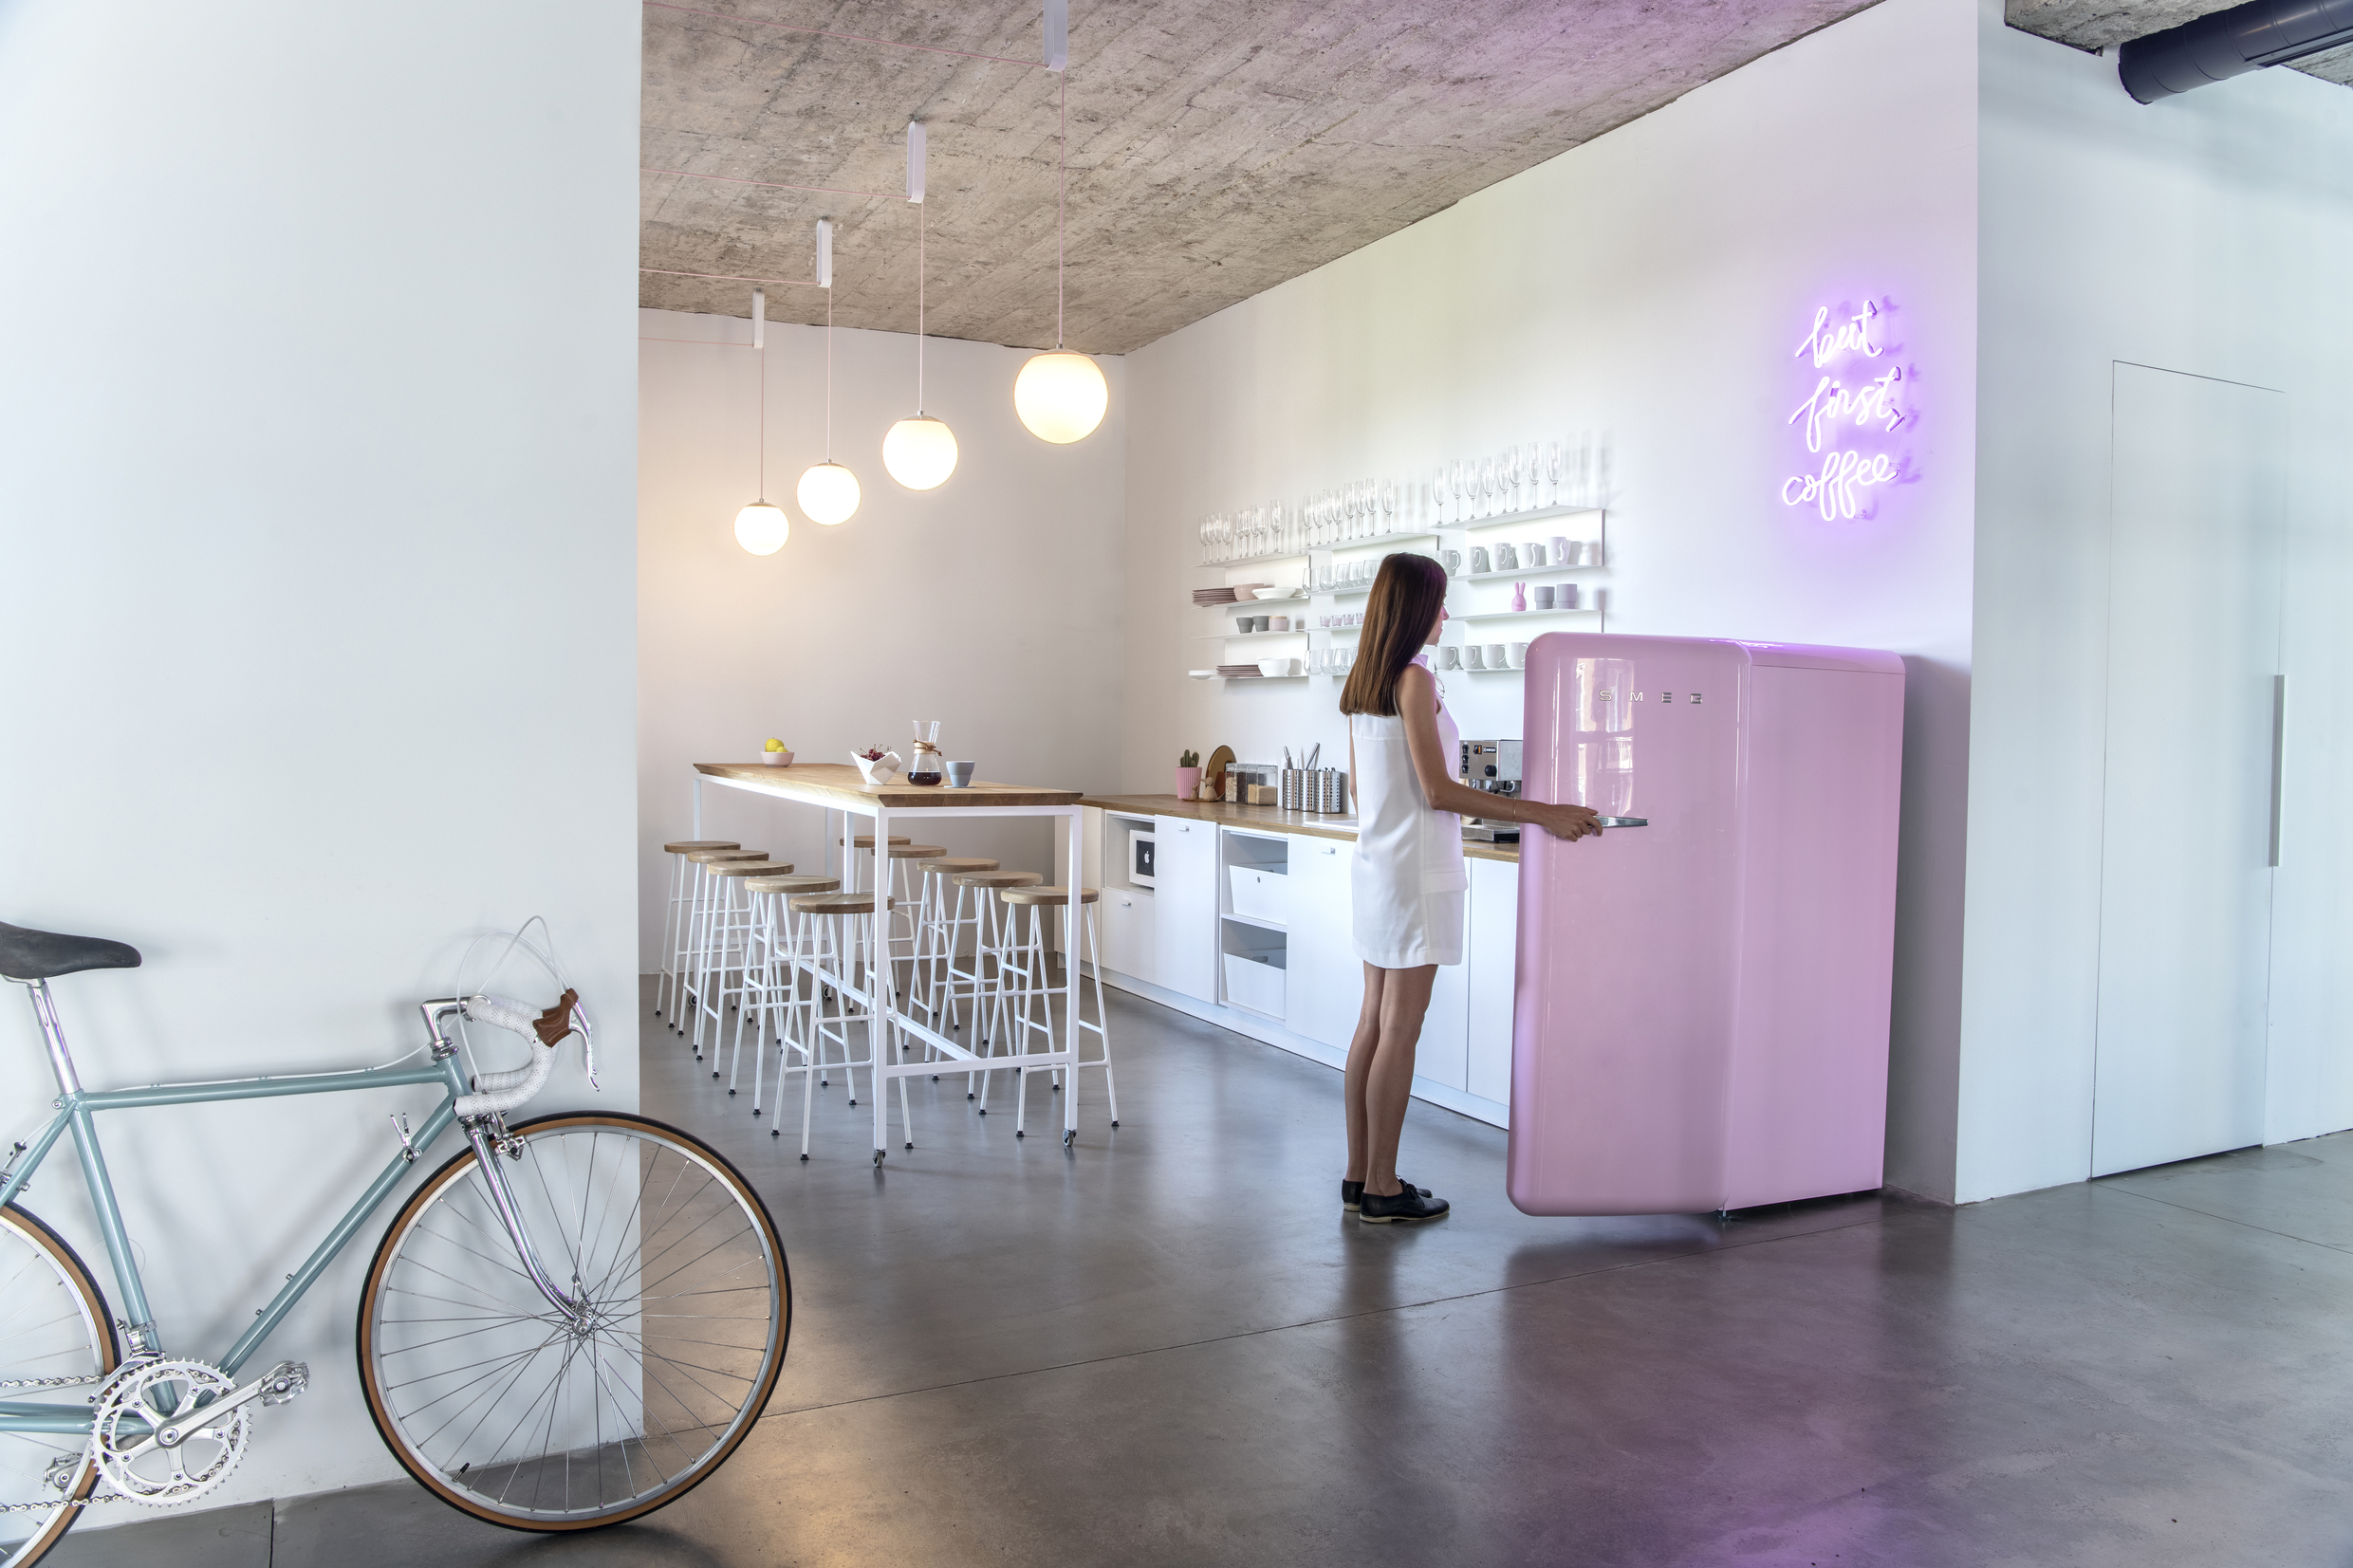 Kitchen area at Despark agency headquarters, Sofia